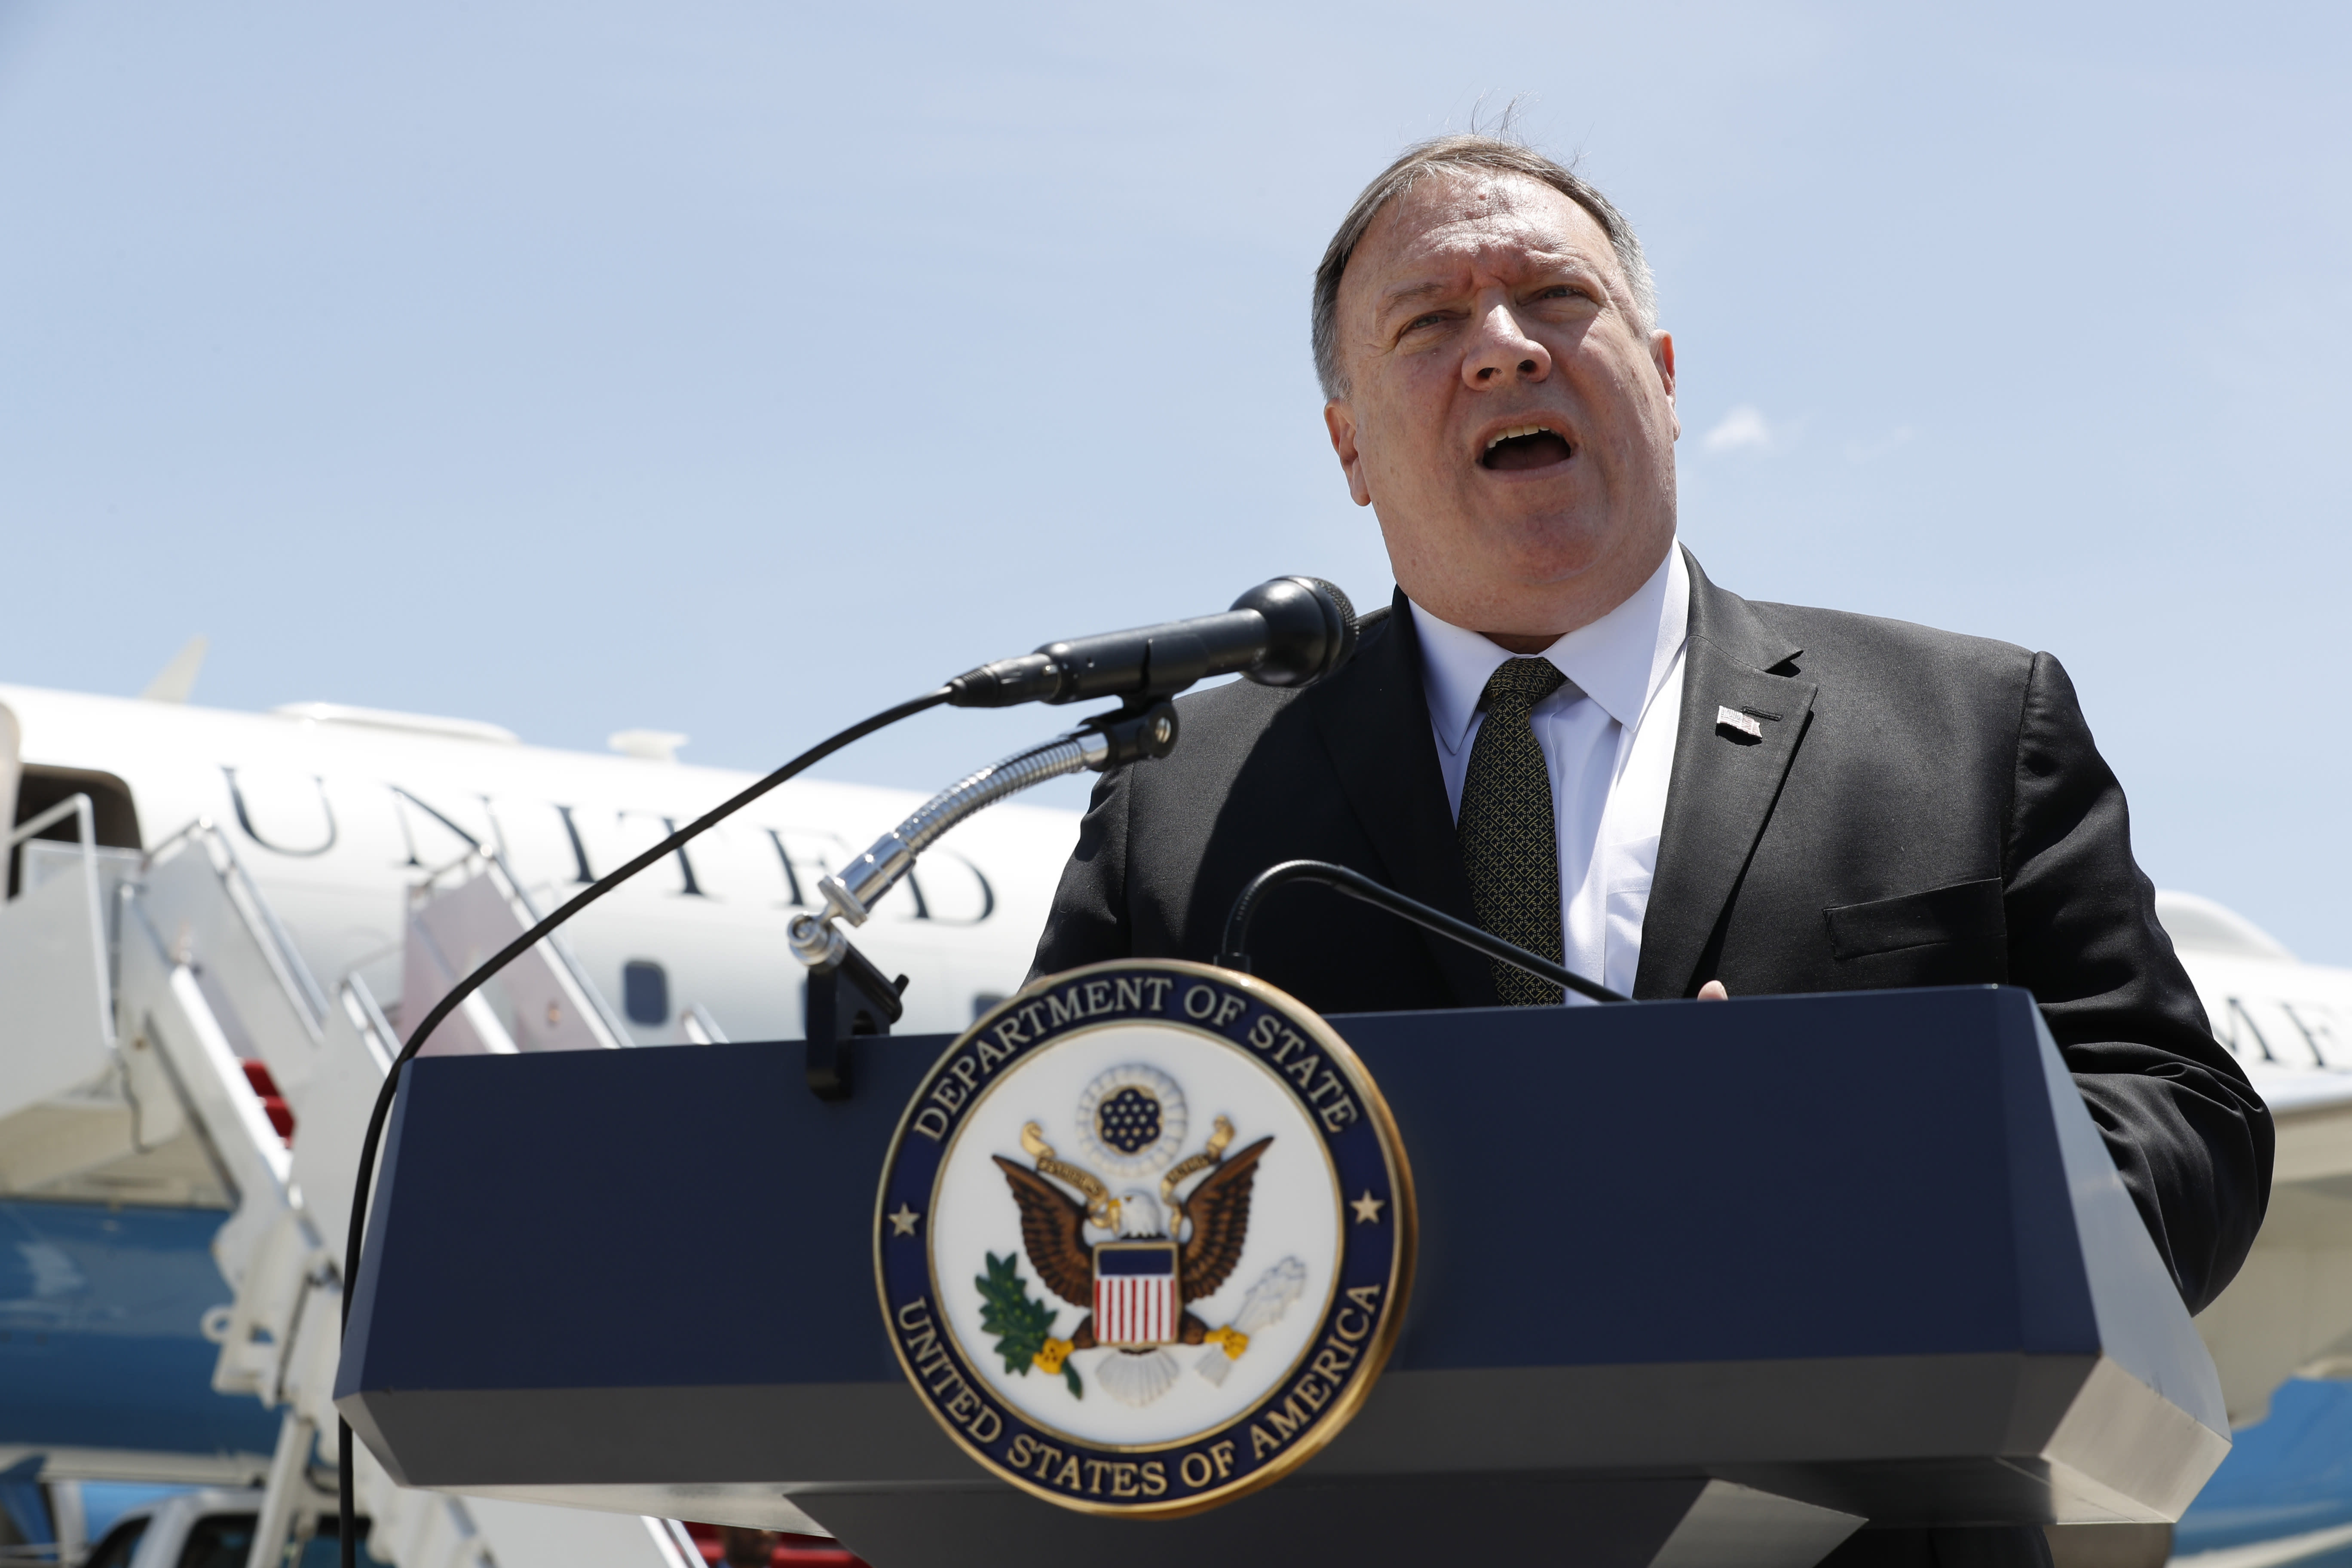 Secretary of State Mike Pompeo speaks to the media at Andrews Air Force Base, Md., Sunday, June 23, 2019, before boarding a plane headed to Jeddah, Saudi Arabia. (AP Photo/Jacquelyn Martin, Pool)